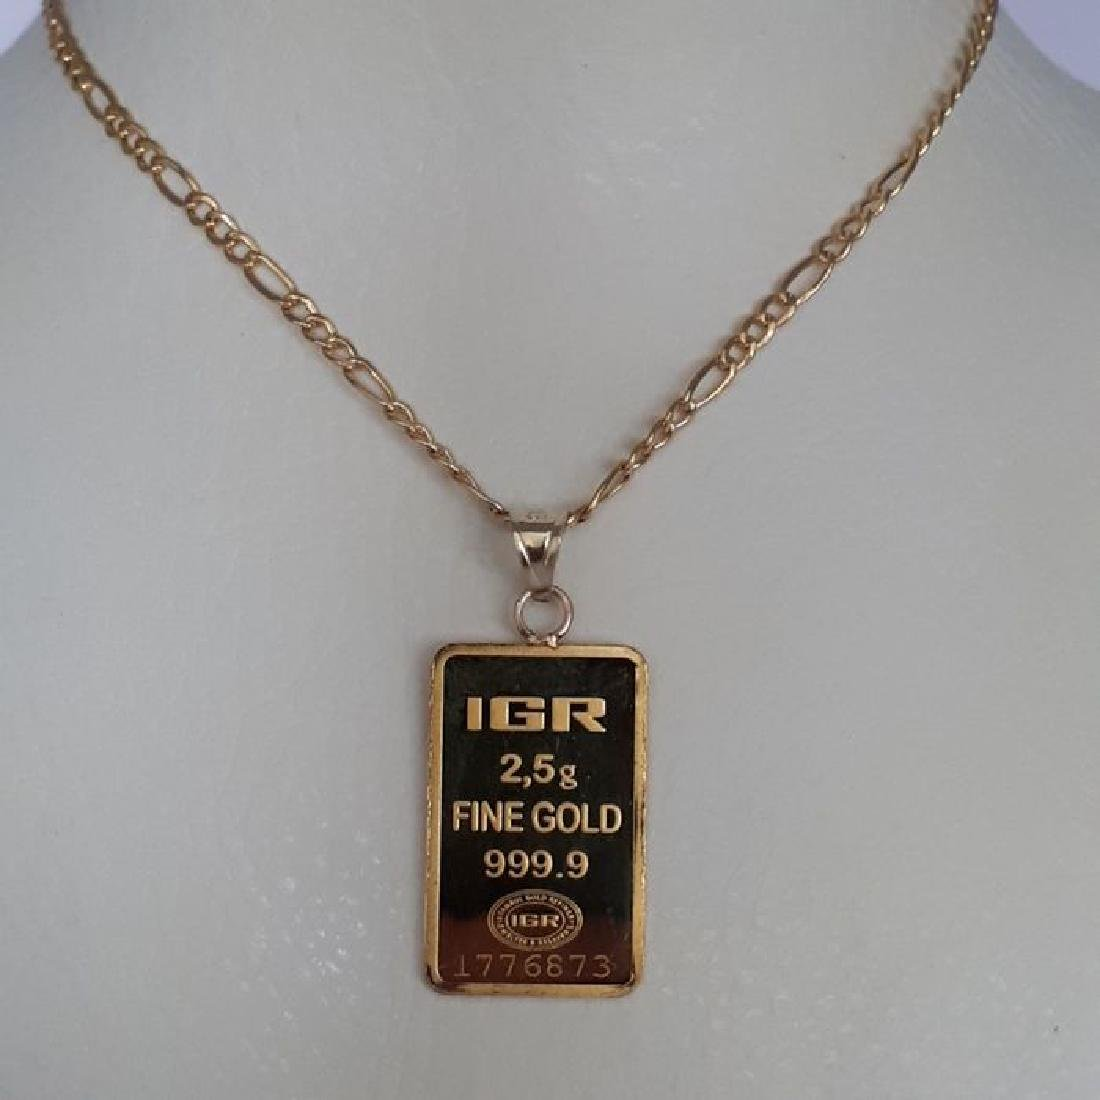 14 ct Yellow Gold Chain & 2.5g Bullion Gold Pendant - 3